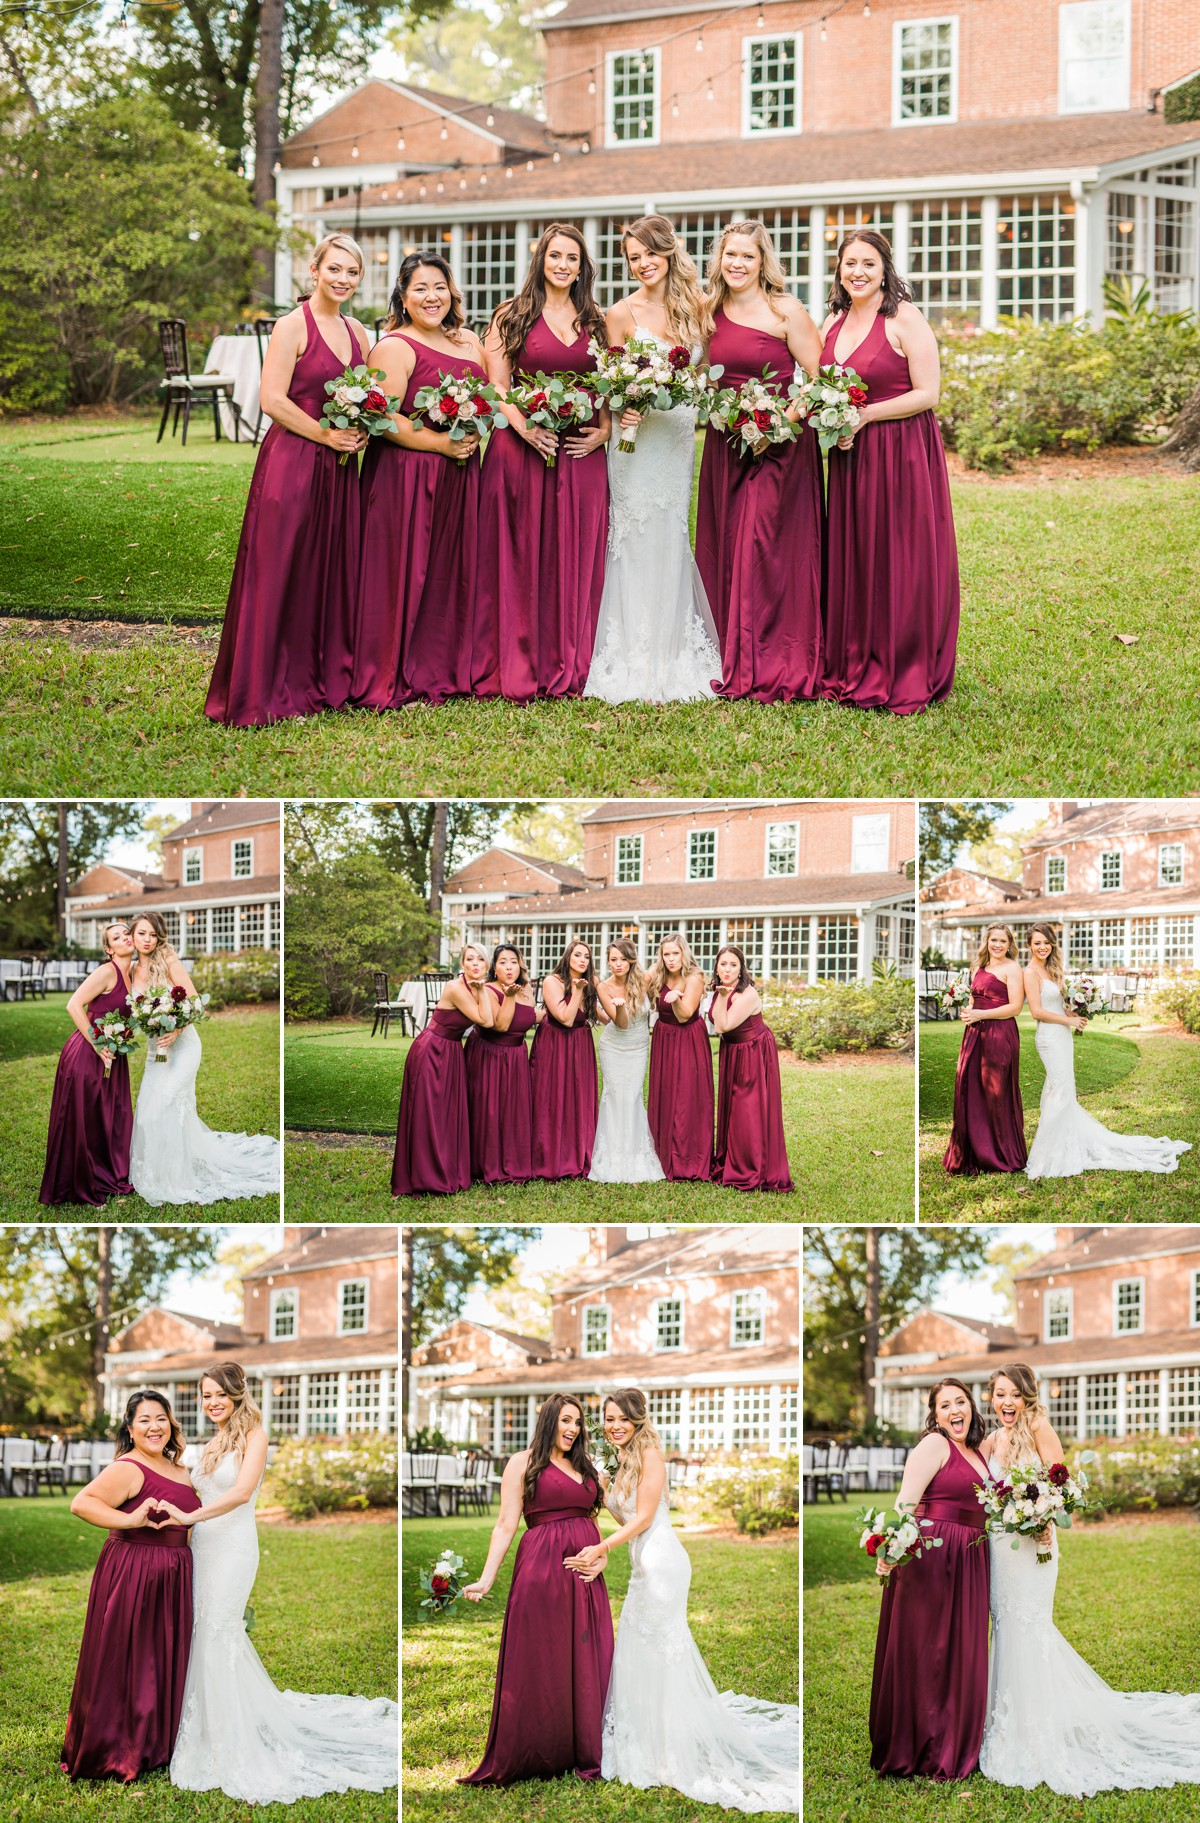 Manor House Wedding at The Houstonian Hotel Bridal Party Bridesmaids